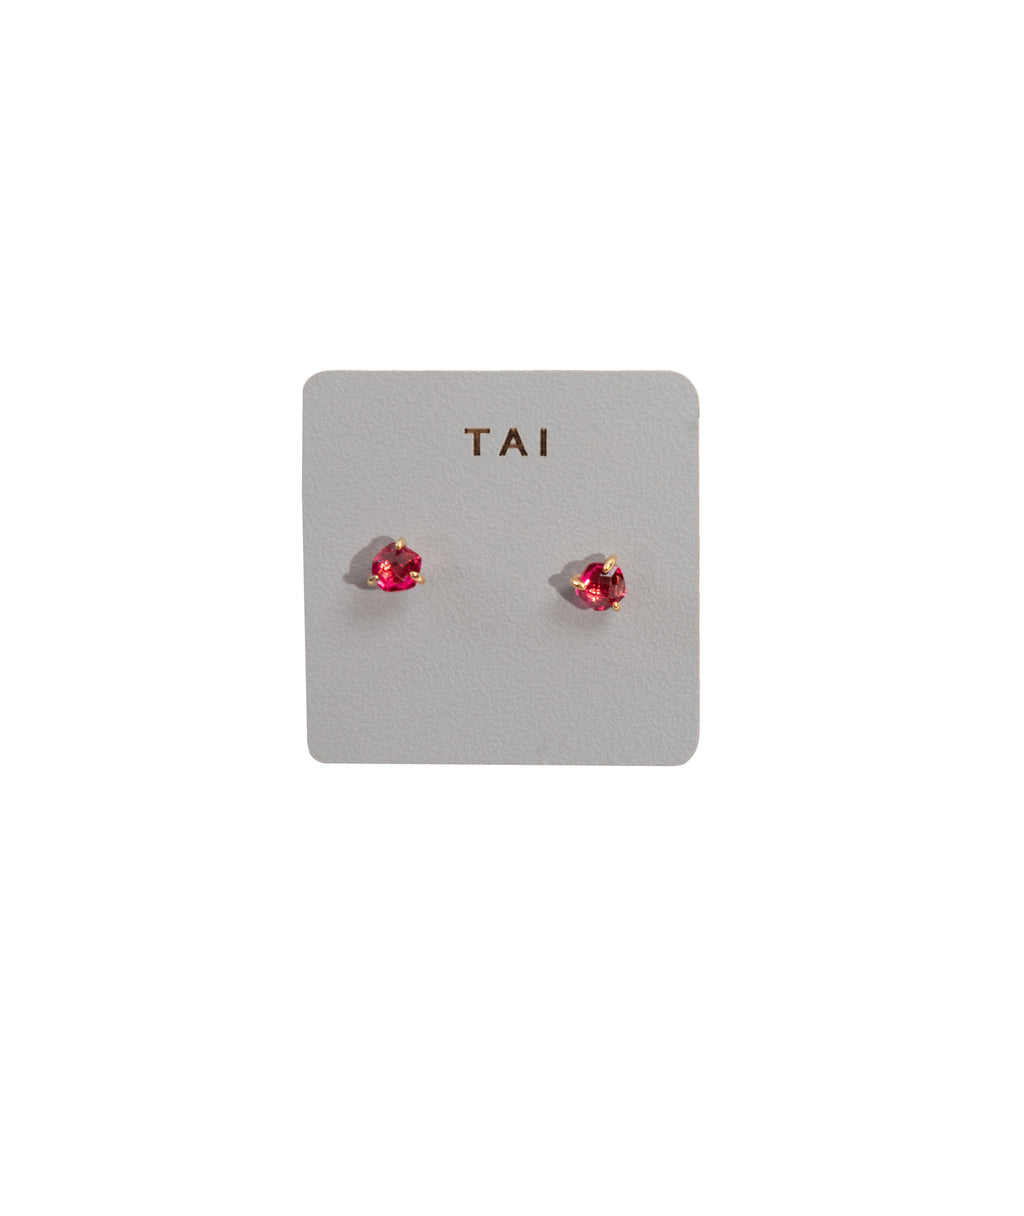 TAI Red Glass Stud Earrings